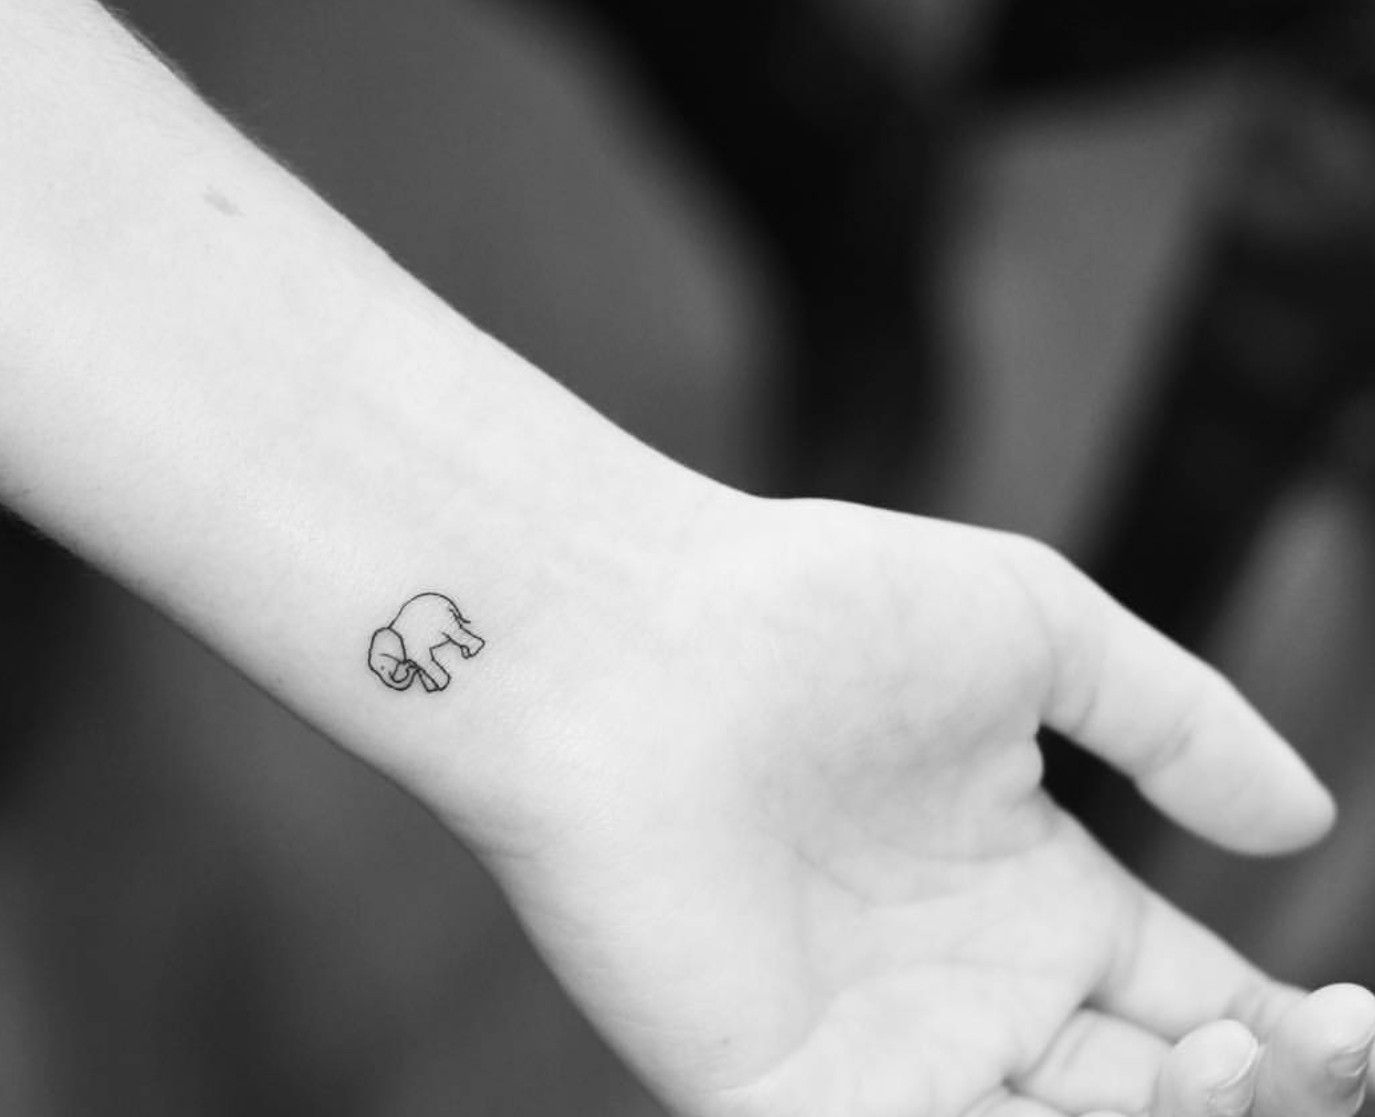 Small tattoo design ideas dainty elephant tattoo  tattoos  pinterest  elephant tattoos